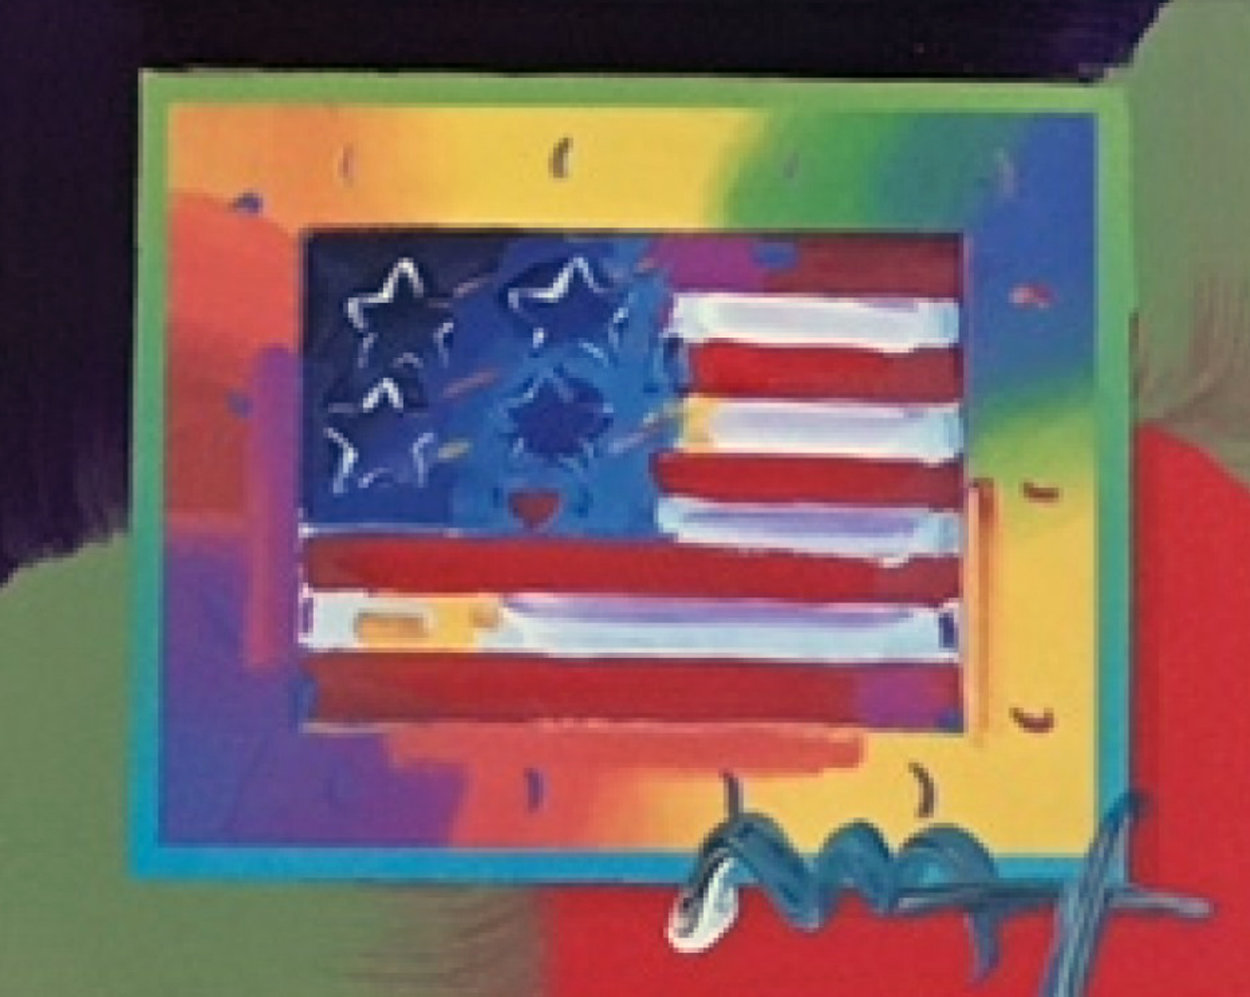 Flag With Heart on Blends - Horizontal  American Suite Unique 2005 Works on Paper (not prints) by Peter Max